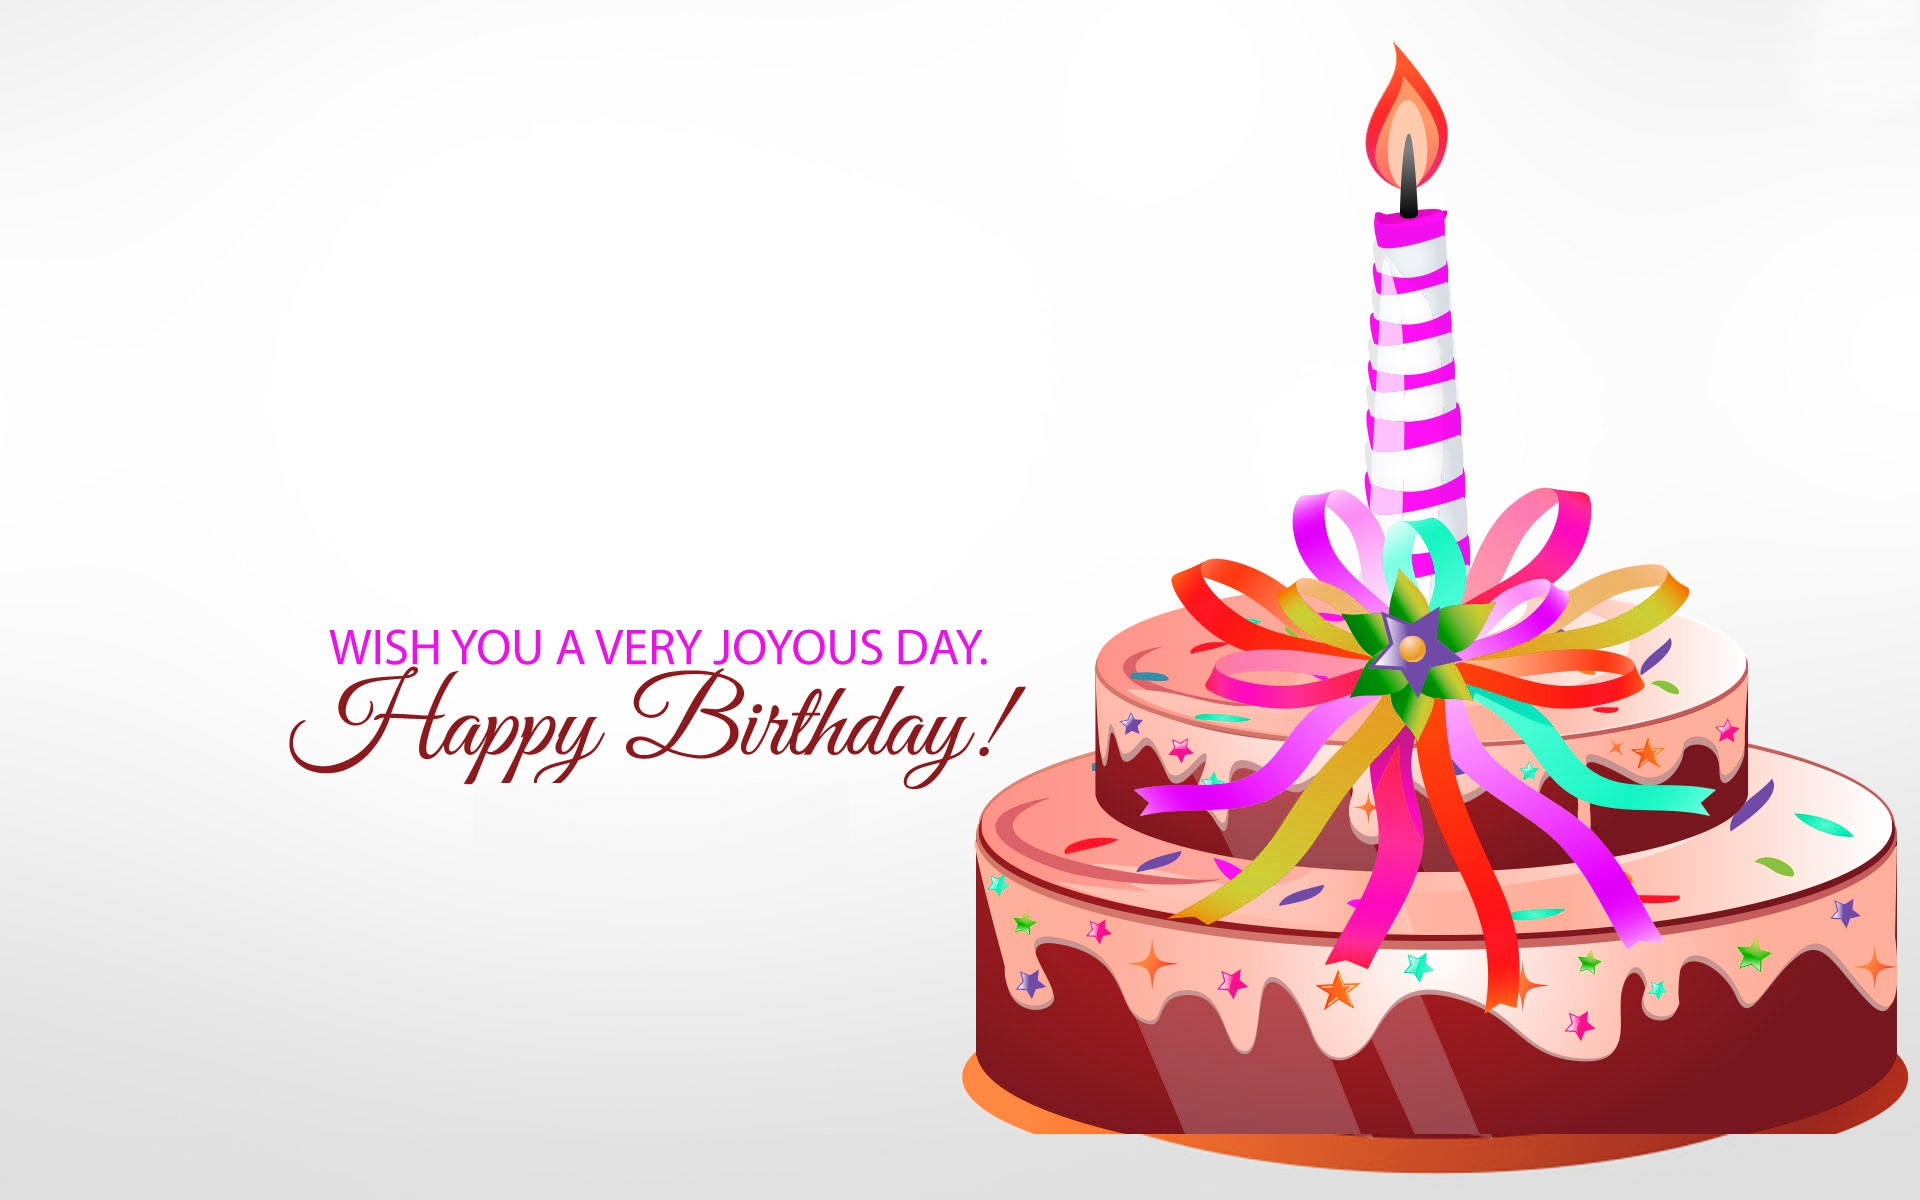 birthday greetings wallpaper ; ee975b31947e340d561401a2e0ab7cea